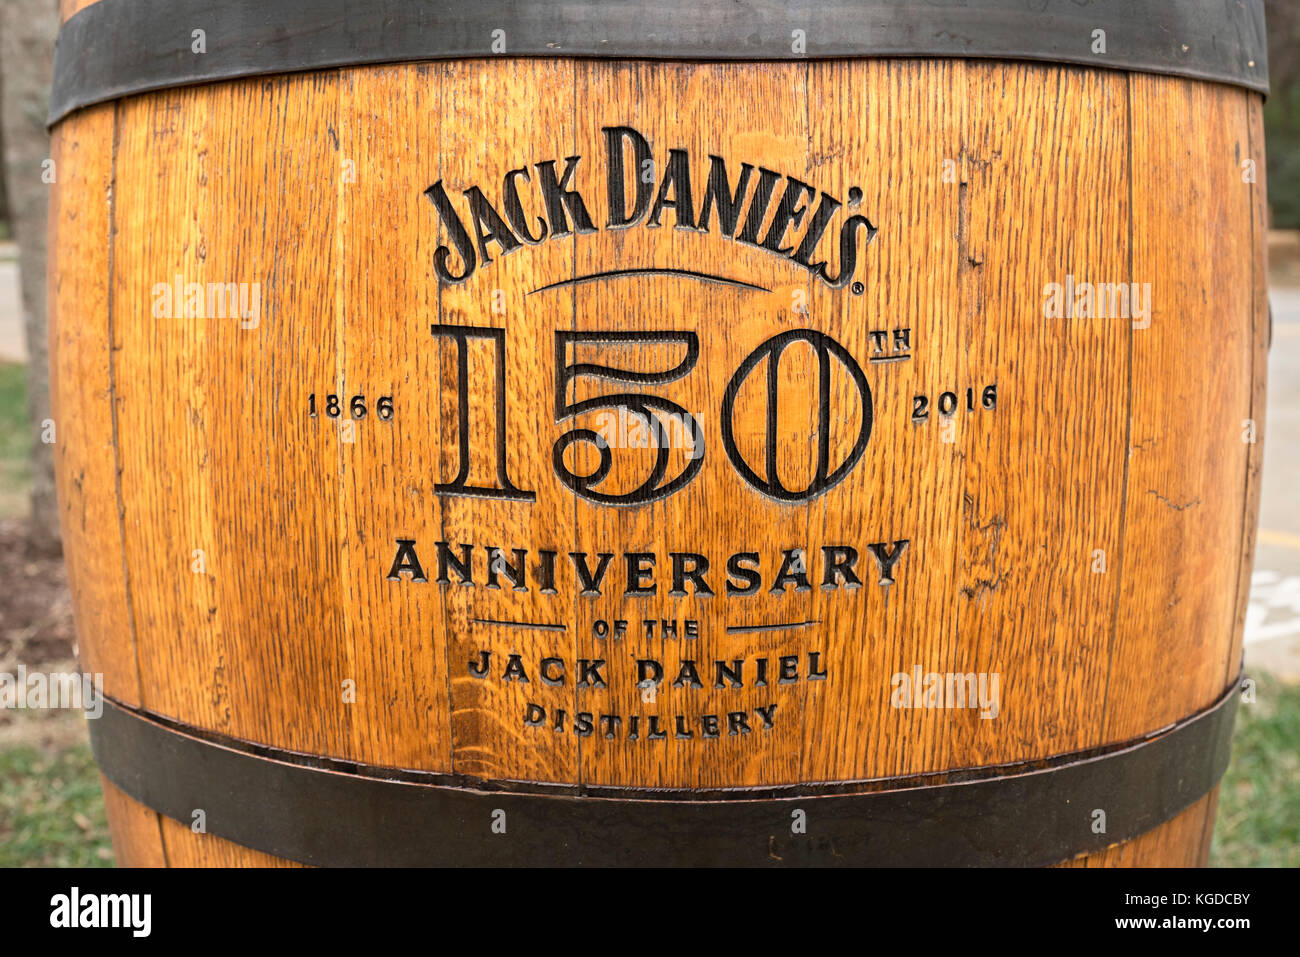 Jack Daniels Barrel Stock Photos Amp Jack Daniels Barrel